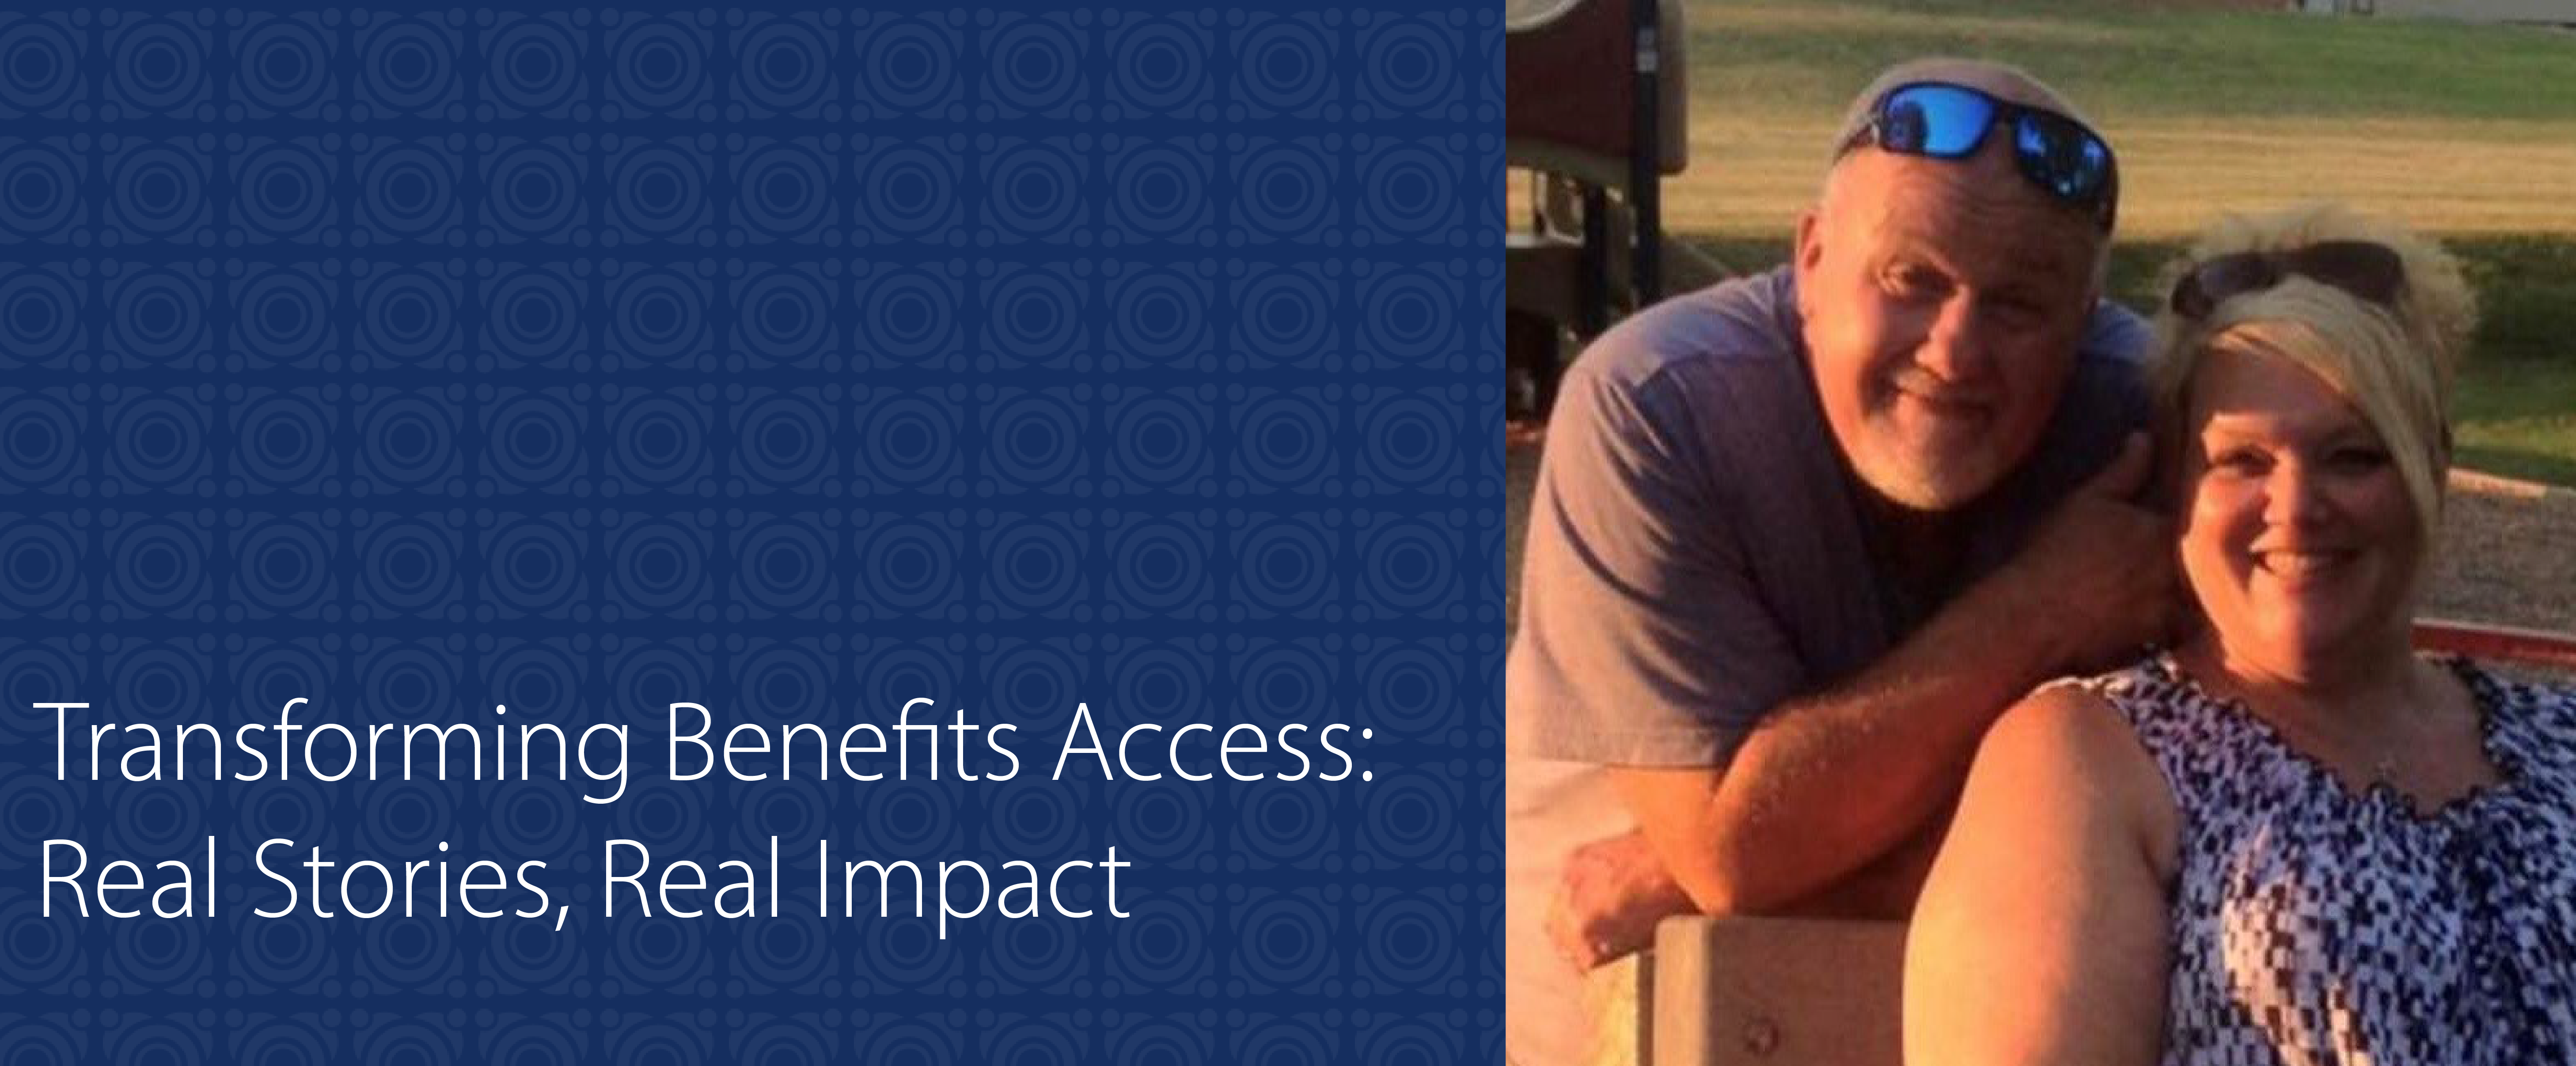 Transforming Benefits Access: Real Stories, Real Impact